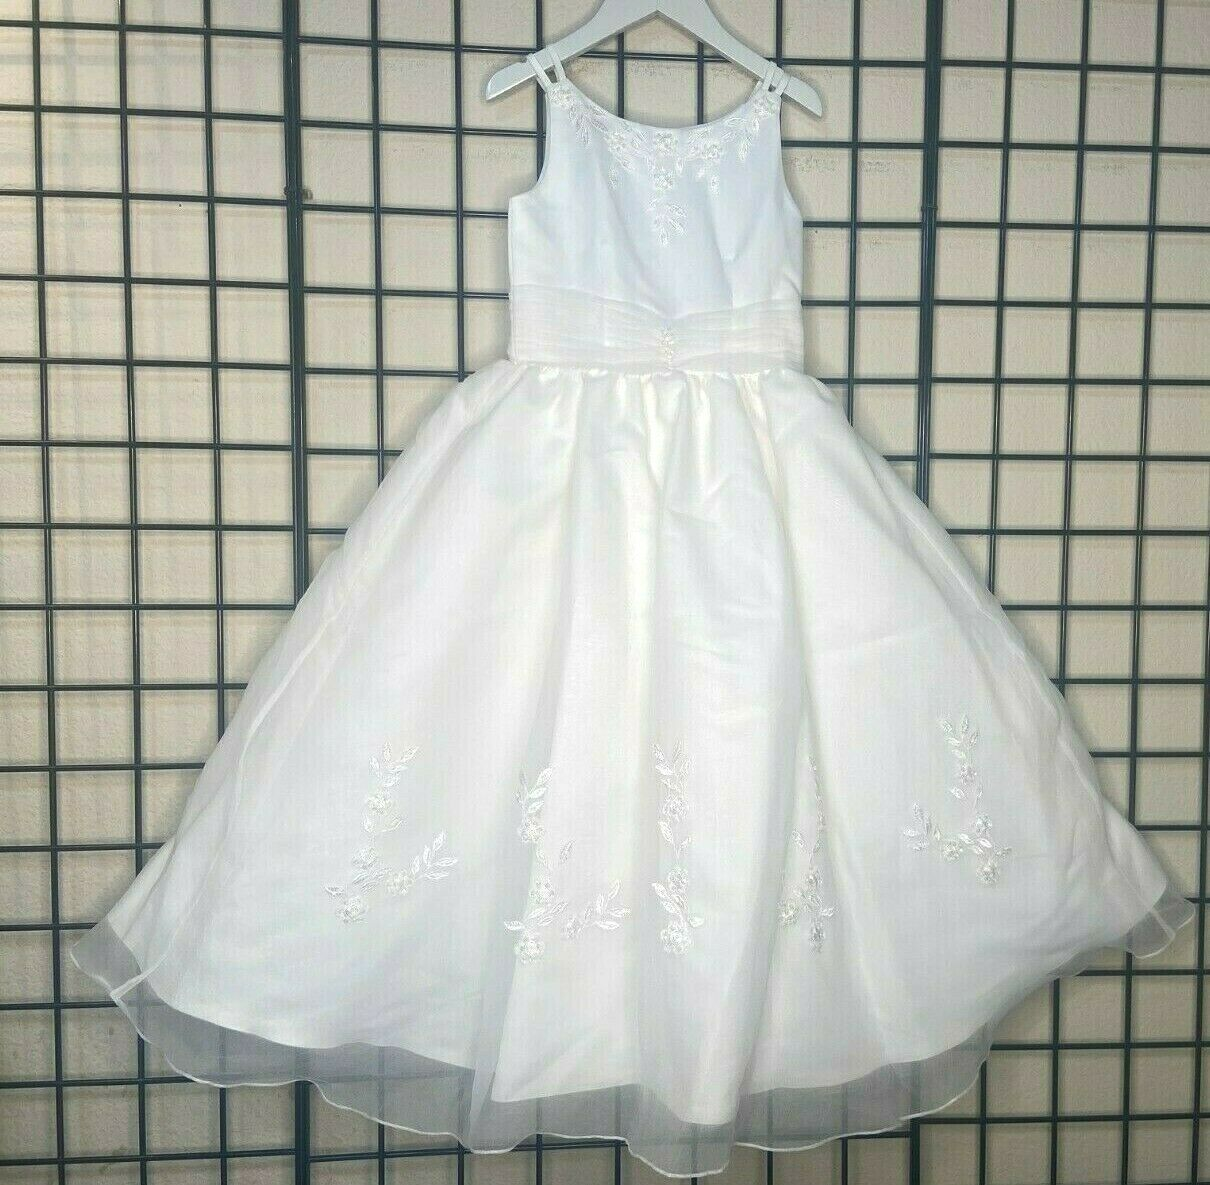 NWT NEW Ivory Satin, Chiffon Sweetie Pie Pageant/Party/Formal Gown 6Y-Fit 6/7/8Y